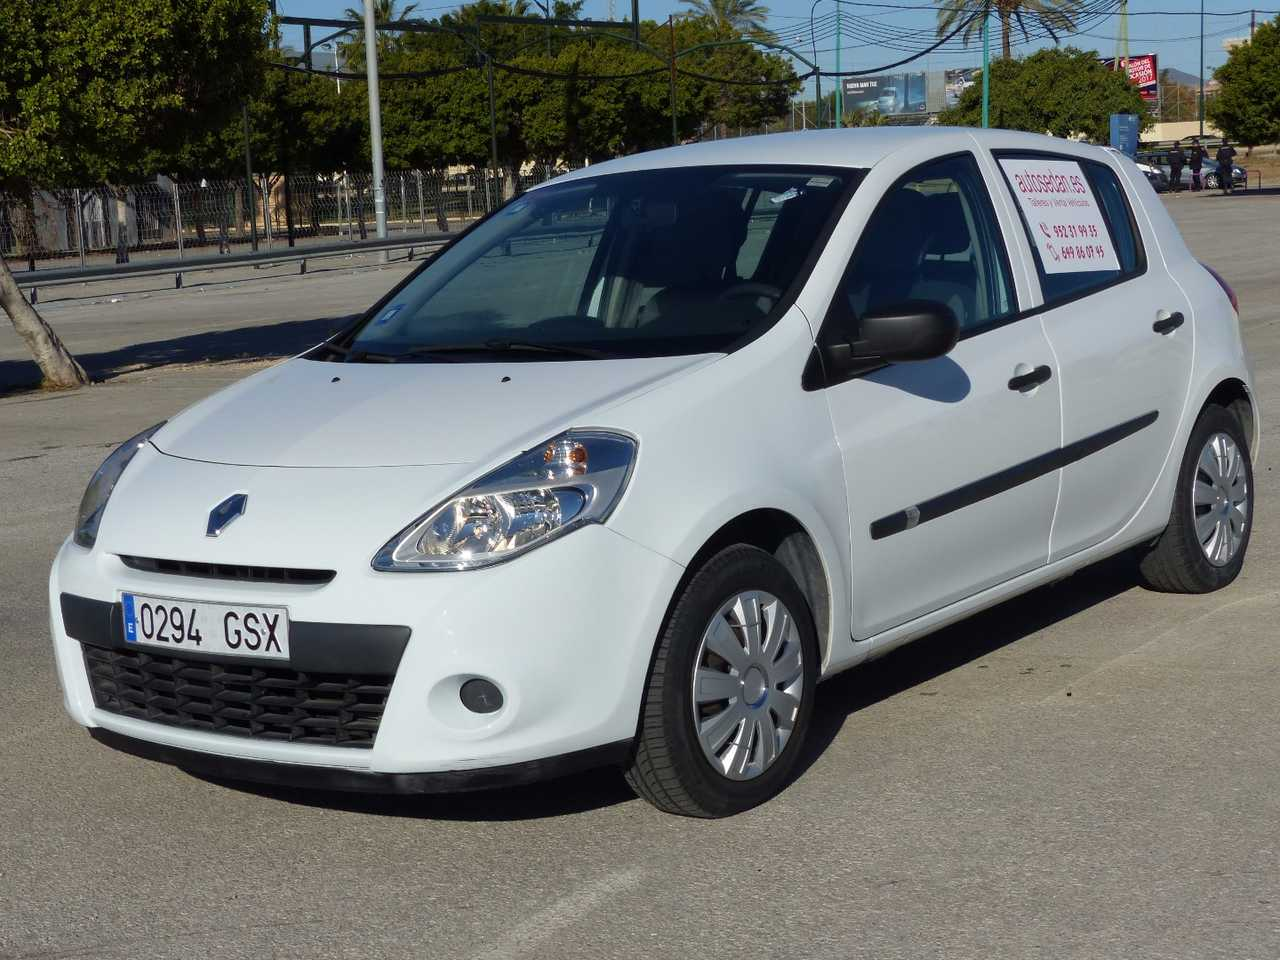 Renault Clio 1.5 DCI AUTHENTIQUE 75 CV ECO 2 CINCO PTAS NO PROCEDE DE RENT A CAR  - Foto 1